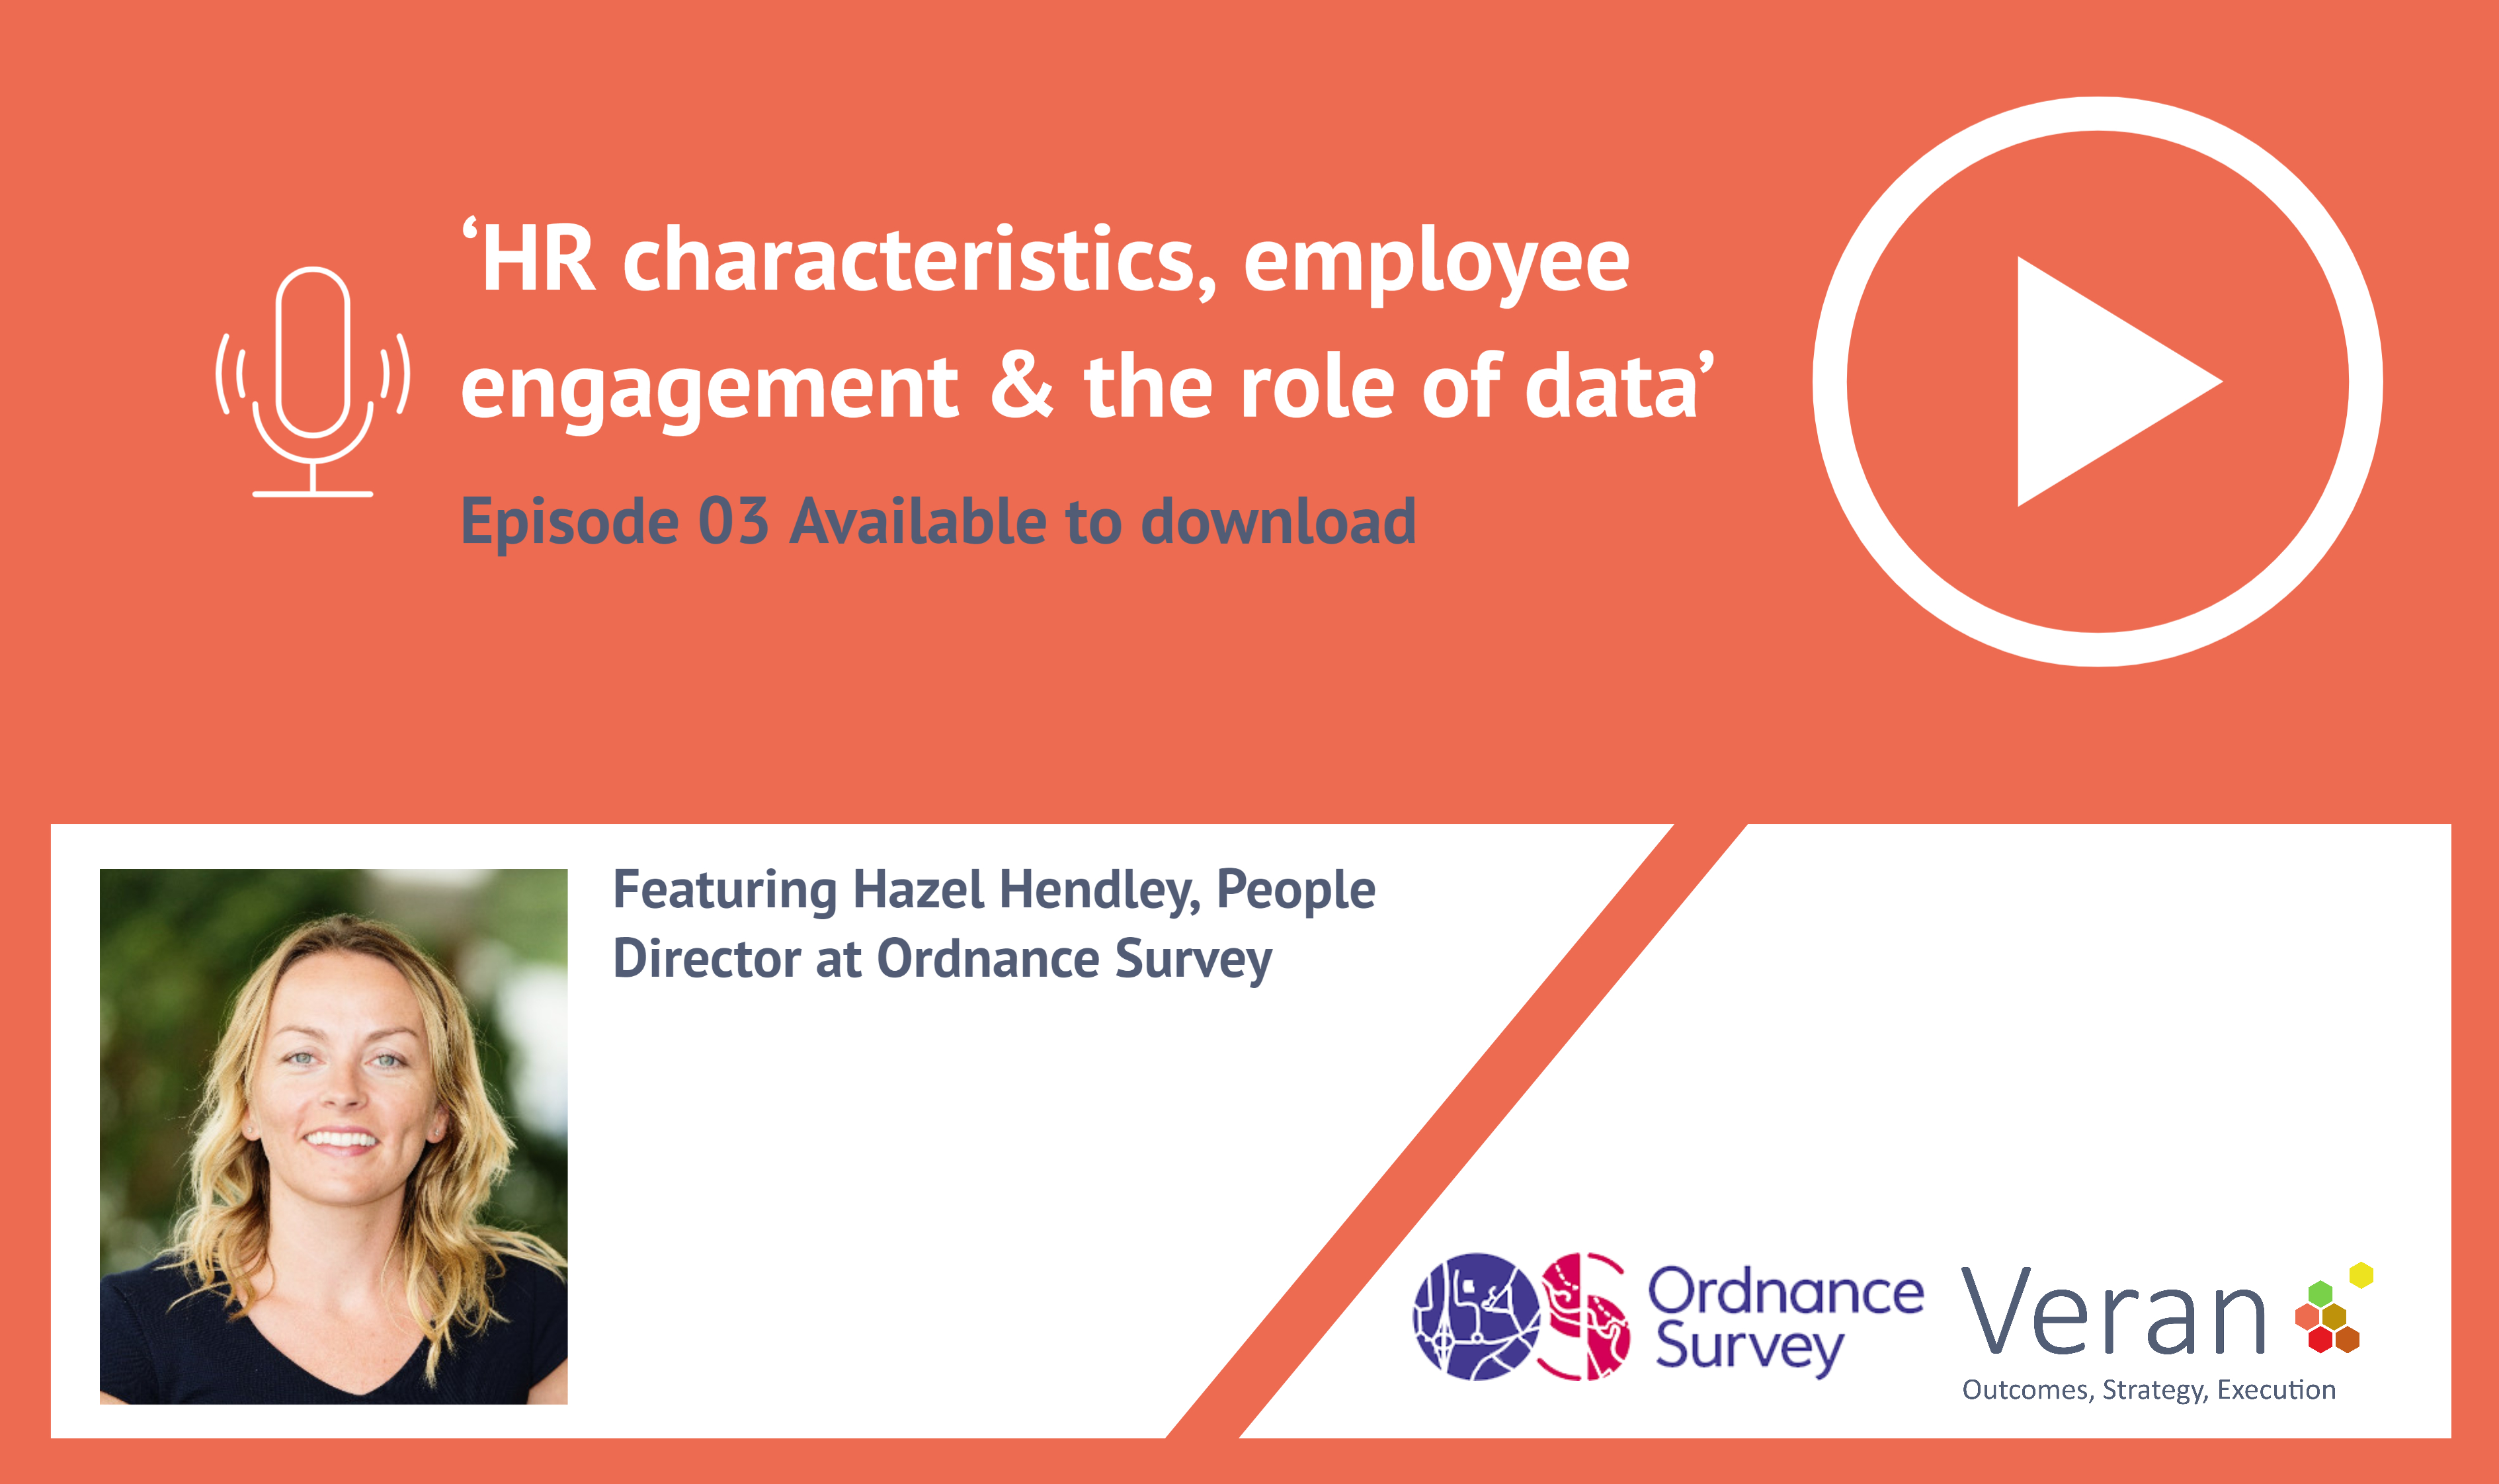 Changing HR Characteristics, Employee Engagement & the Role of Data